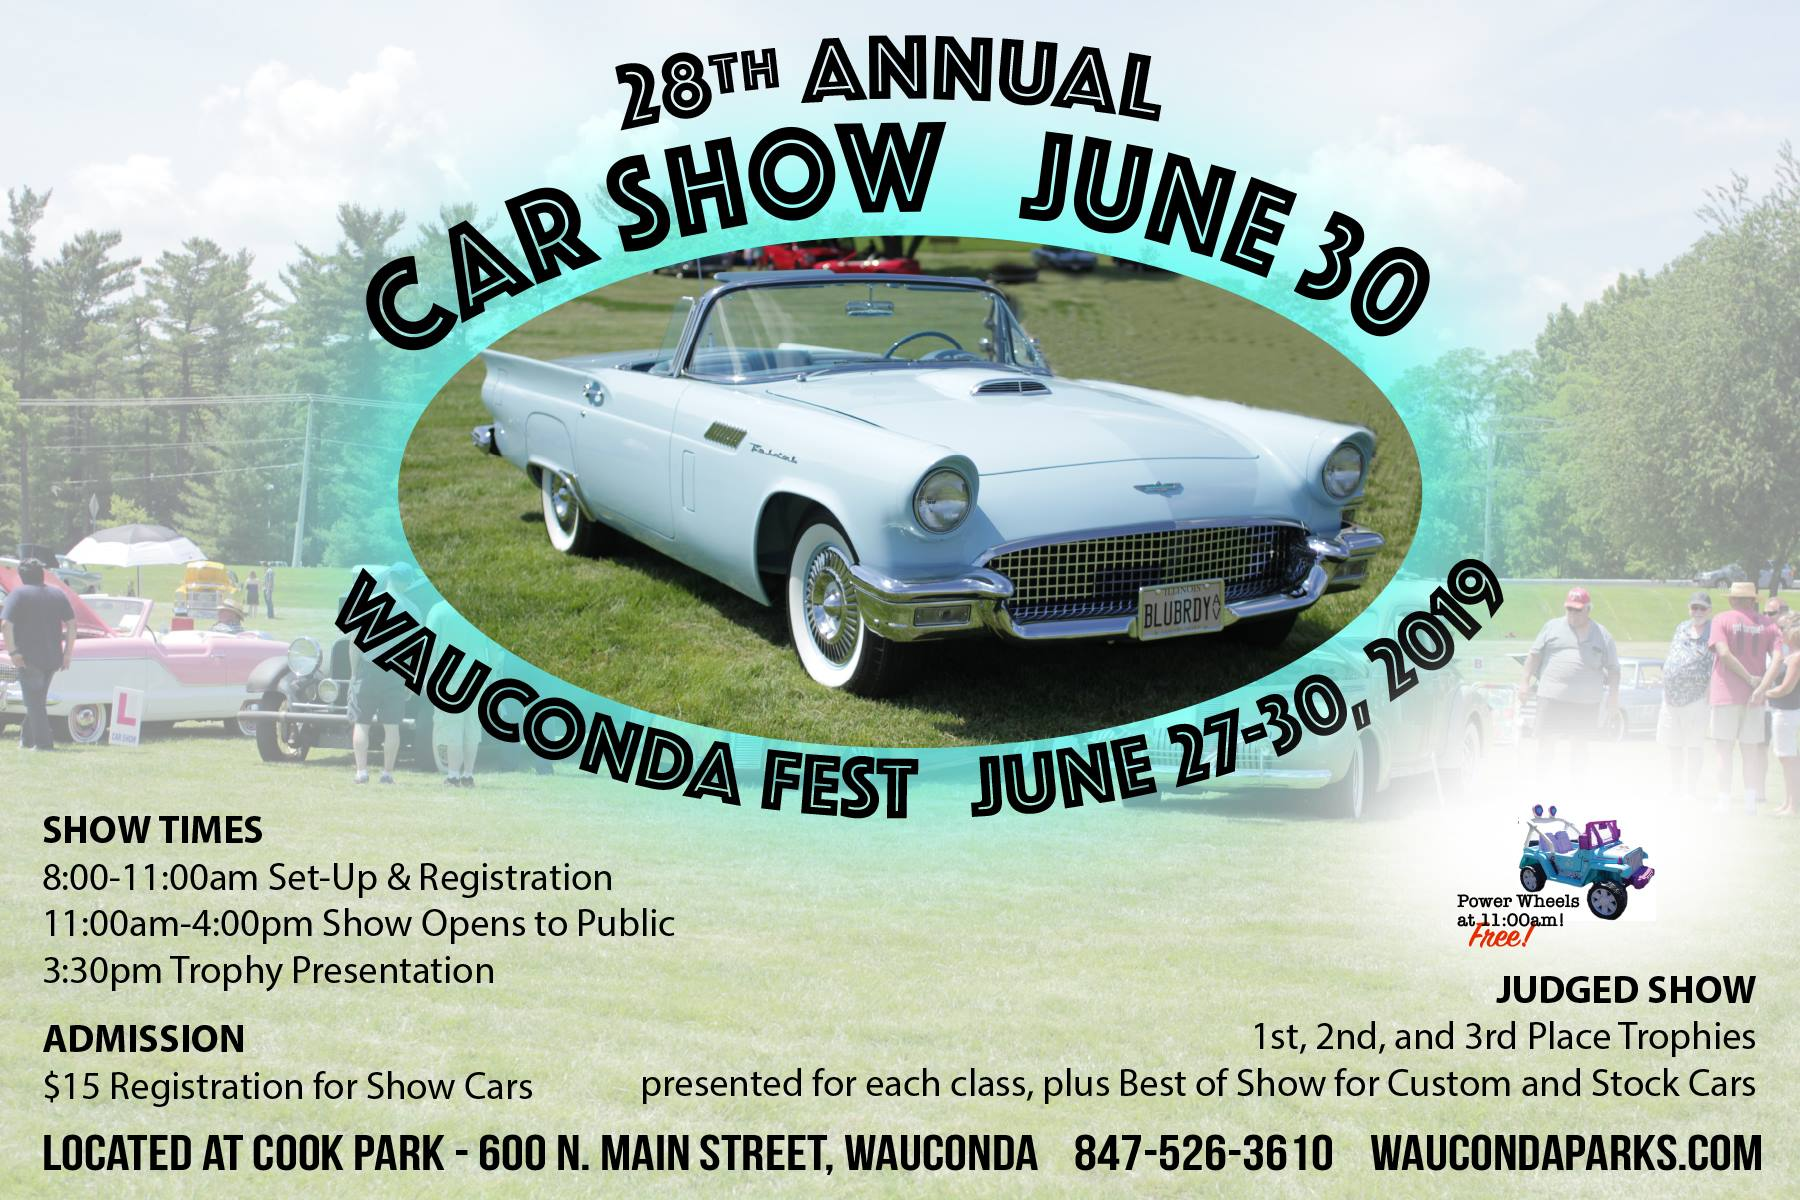 Wauconda Fest Car Show @ Cook Park